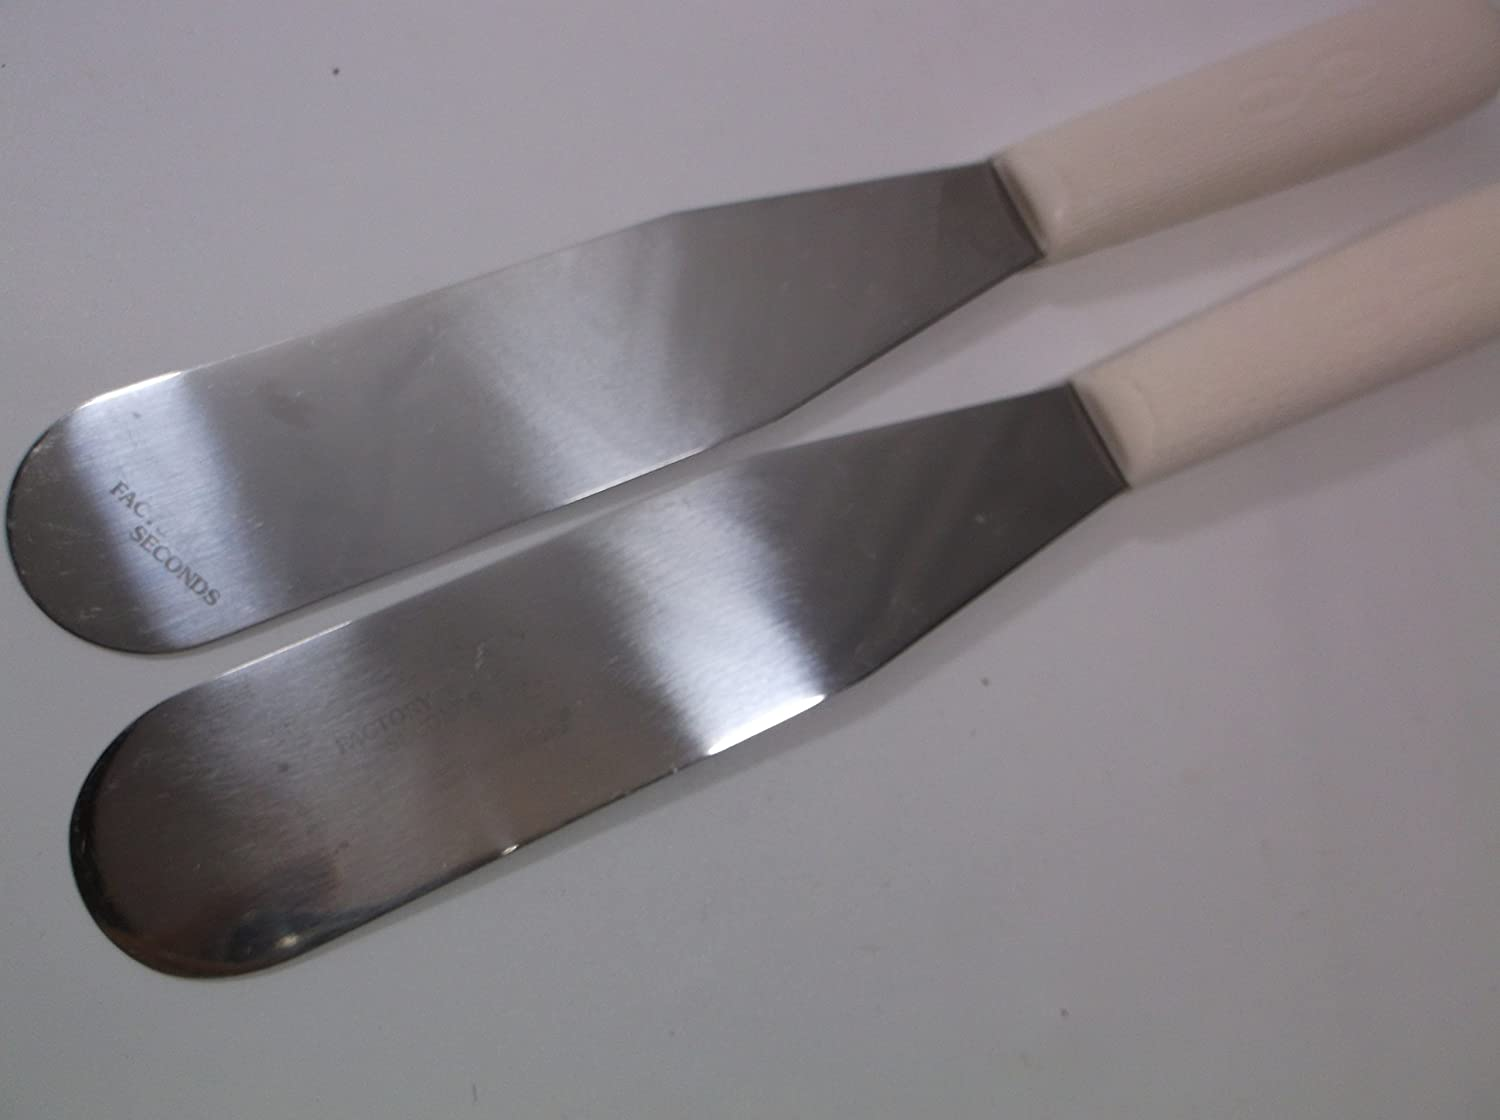 Bakers Spatulas Semi Flex Blades Set of Never Used Factory seconds Bundle Lot of 2 Dexter Russell USA 6.5X1.5 S284-6 1//2 2